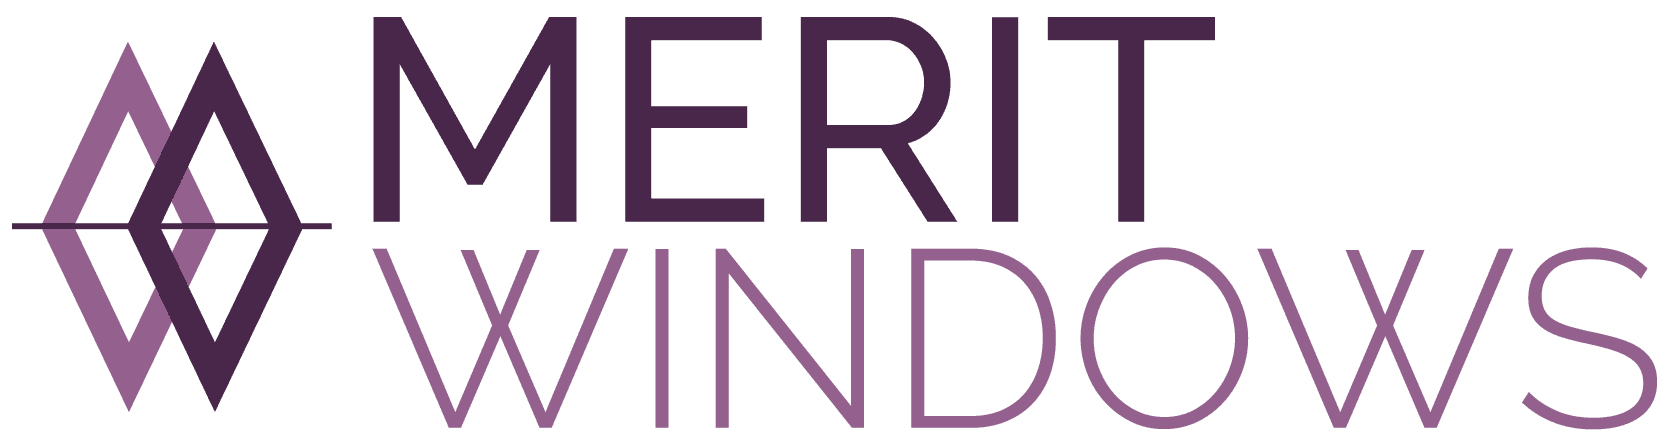 MERIT WINDOWS logo